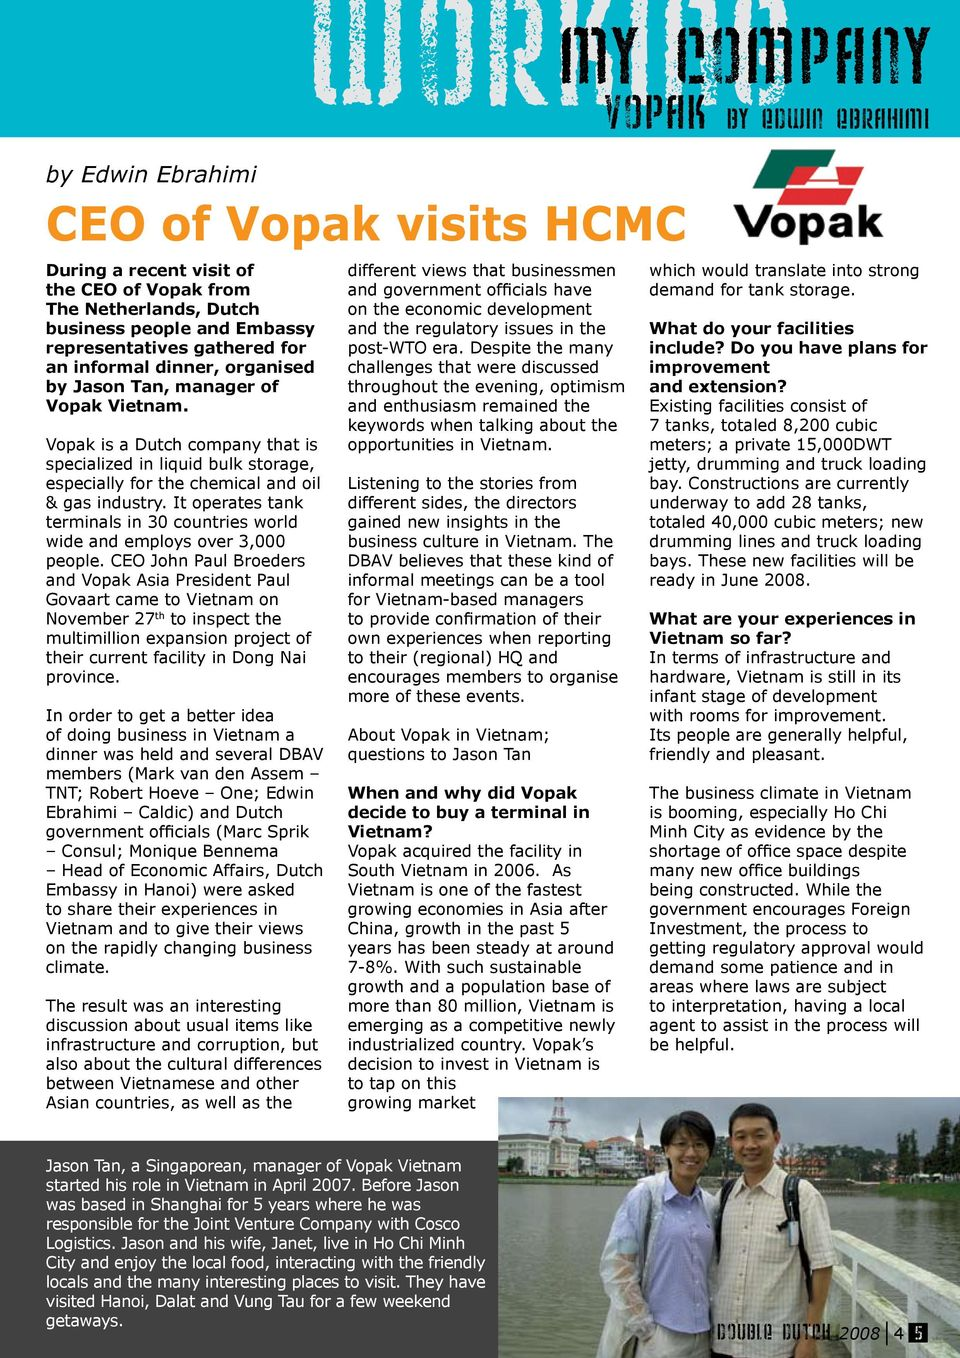 Vopak is a Dutch company that is specialized in liquid bulk storage, especially for the chemical and oil & gas industry.